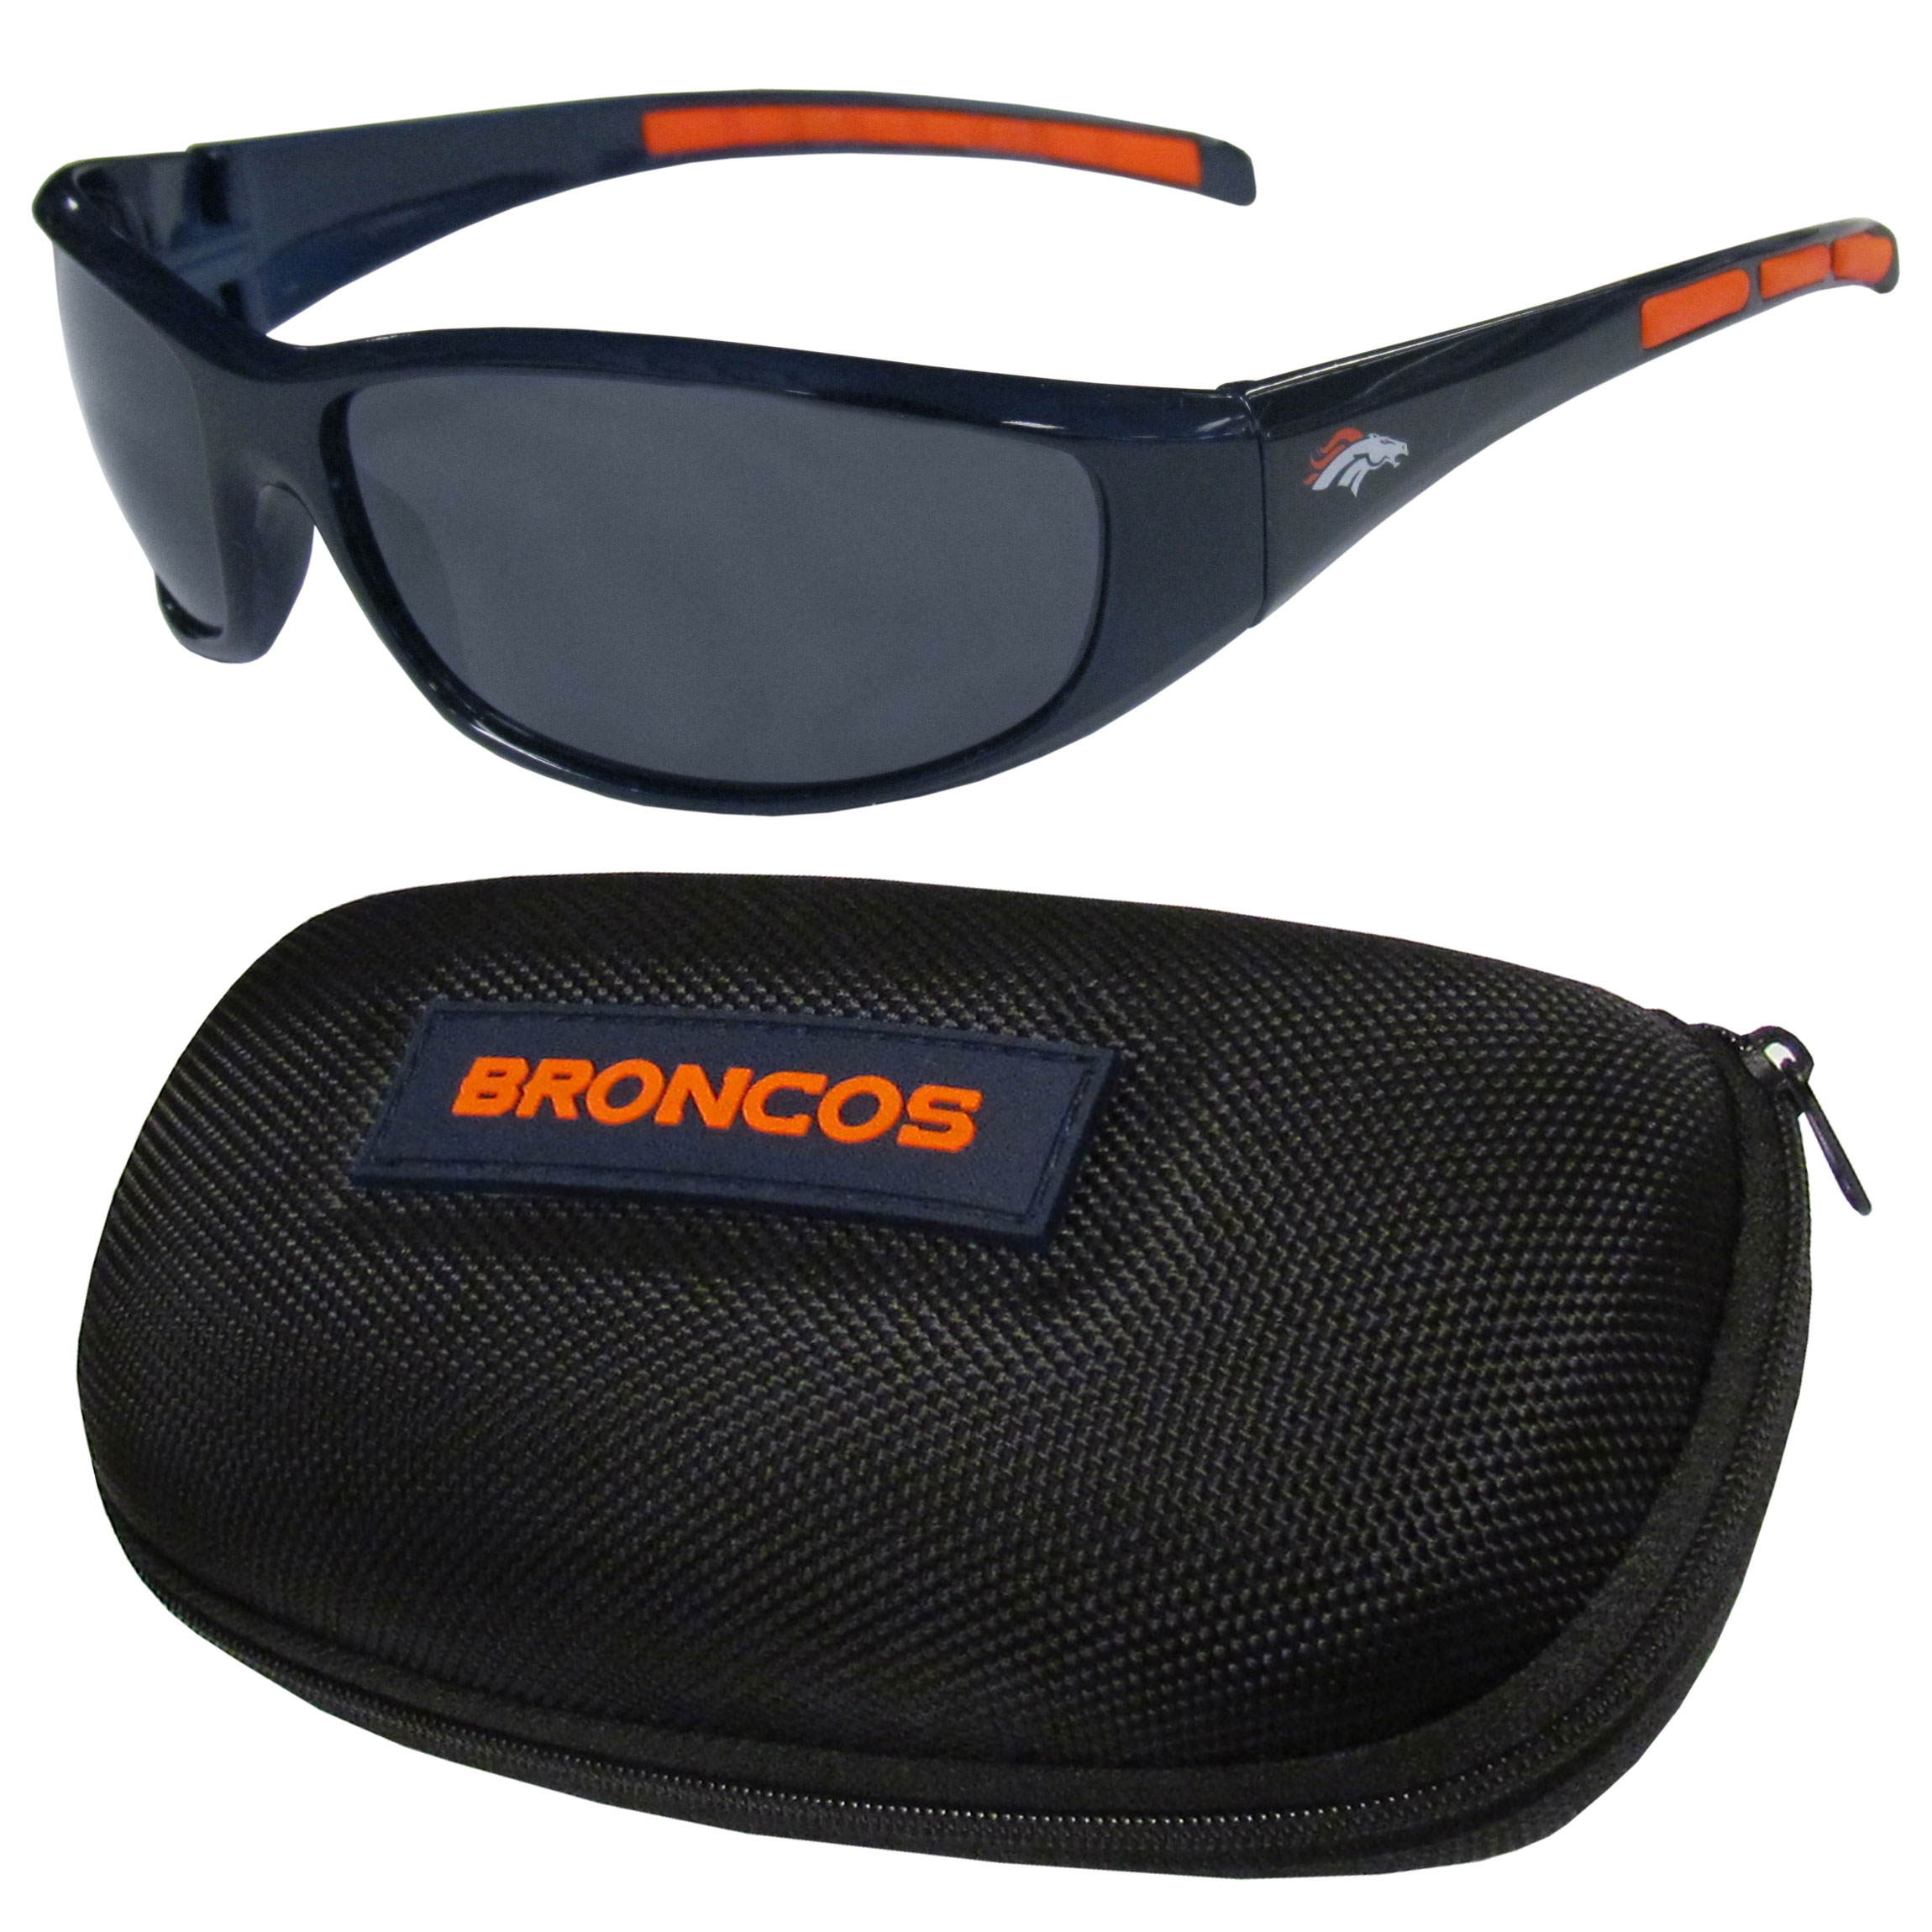 Denver Broncos Wrap Sunglass and Case Set - This great set includes a high quality pair of Denver Broncos wrap sunglasses and hard carrying case.